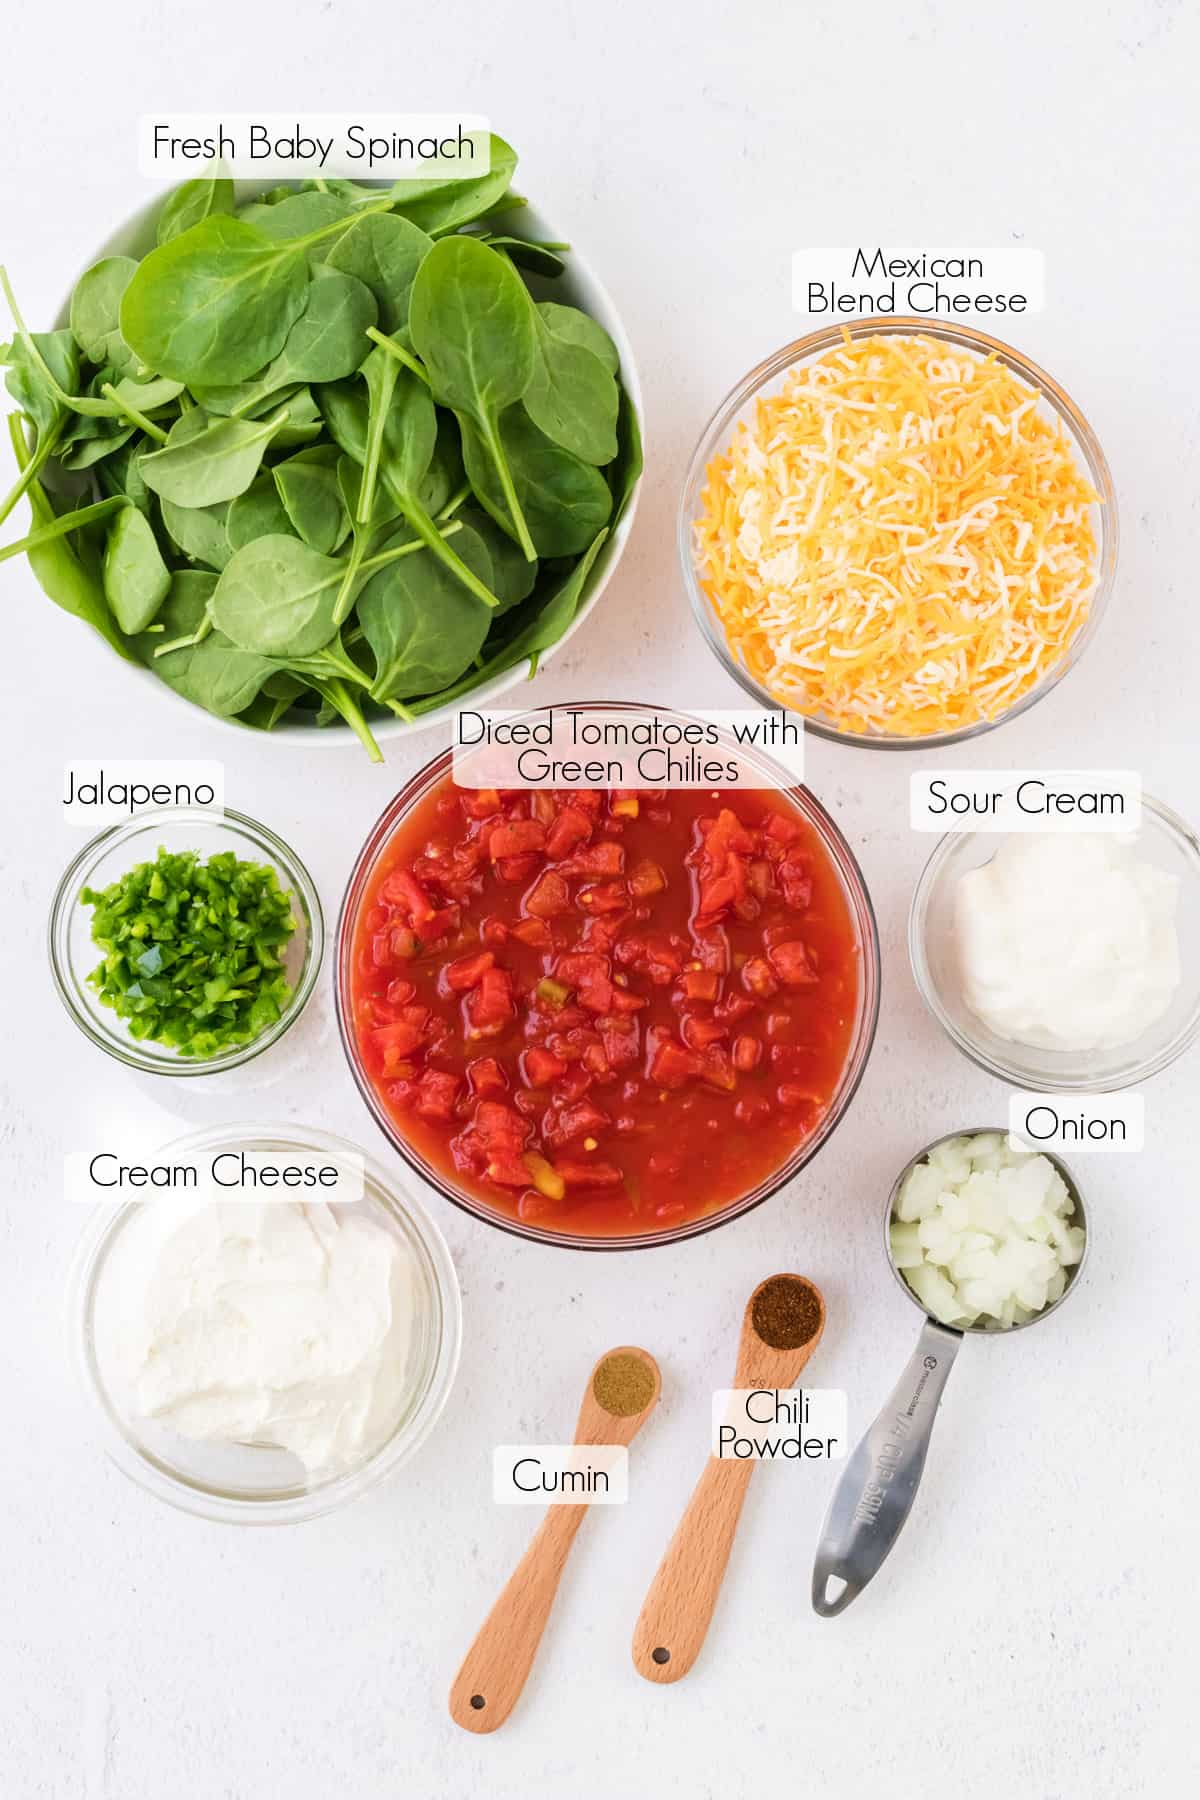 Labeled ingredients to make spinach queso dip.